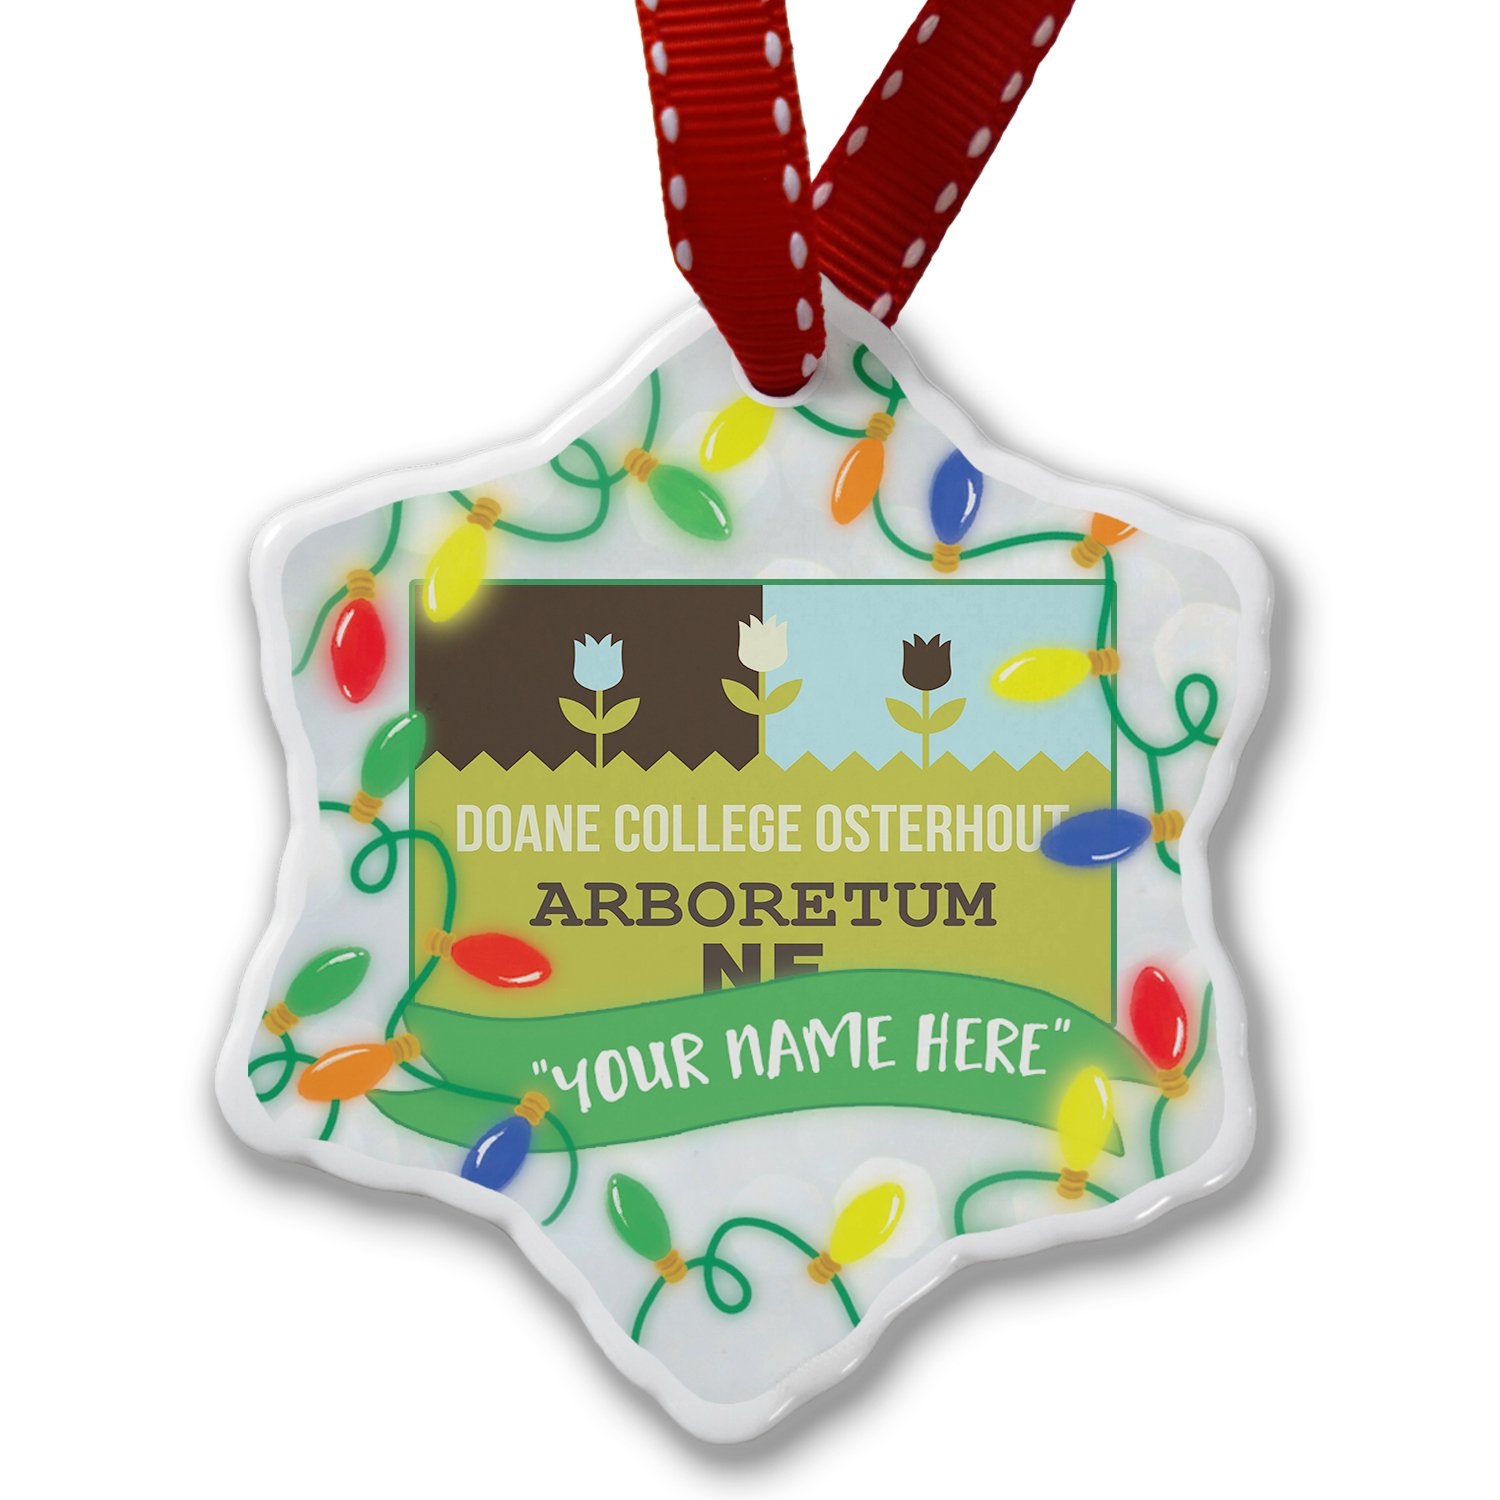 Personalized Name Christmas Ornament, US Gardens Doane College Osterhout Arboretum - NE NEONBLOND